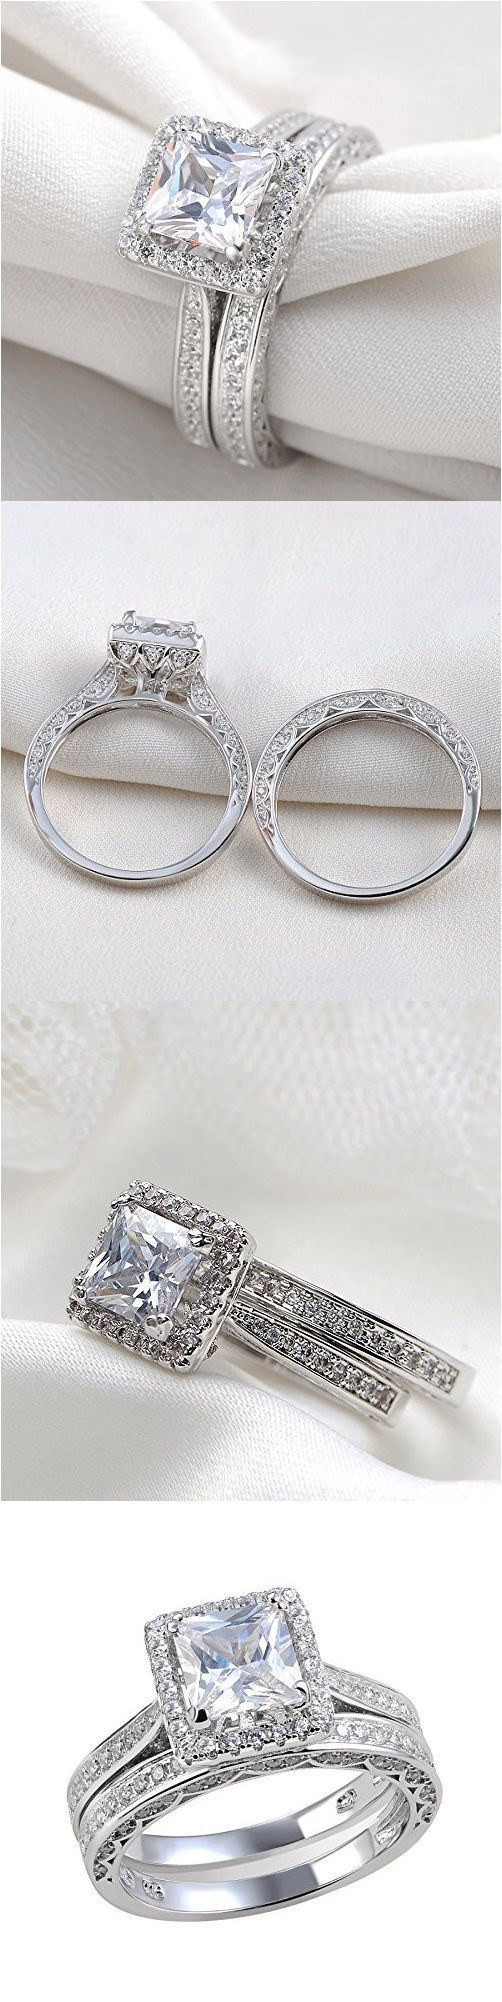 Excellent Night Before Christmas Engagement Ring Inspiration https://bridalore.com/2017/11/15/night-before-christmas-engagement-ring-inspiration/ #weddingrings